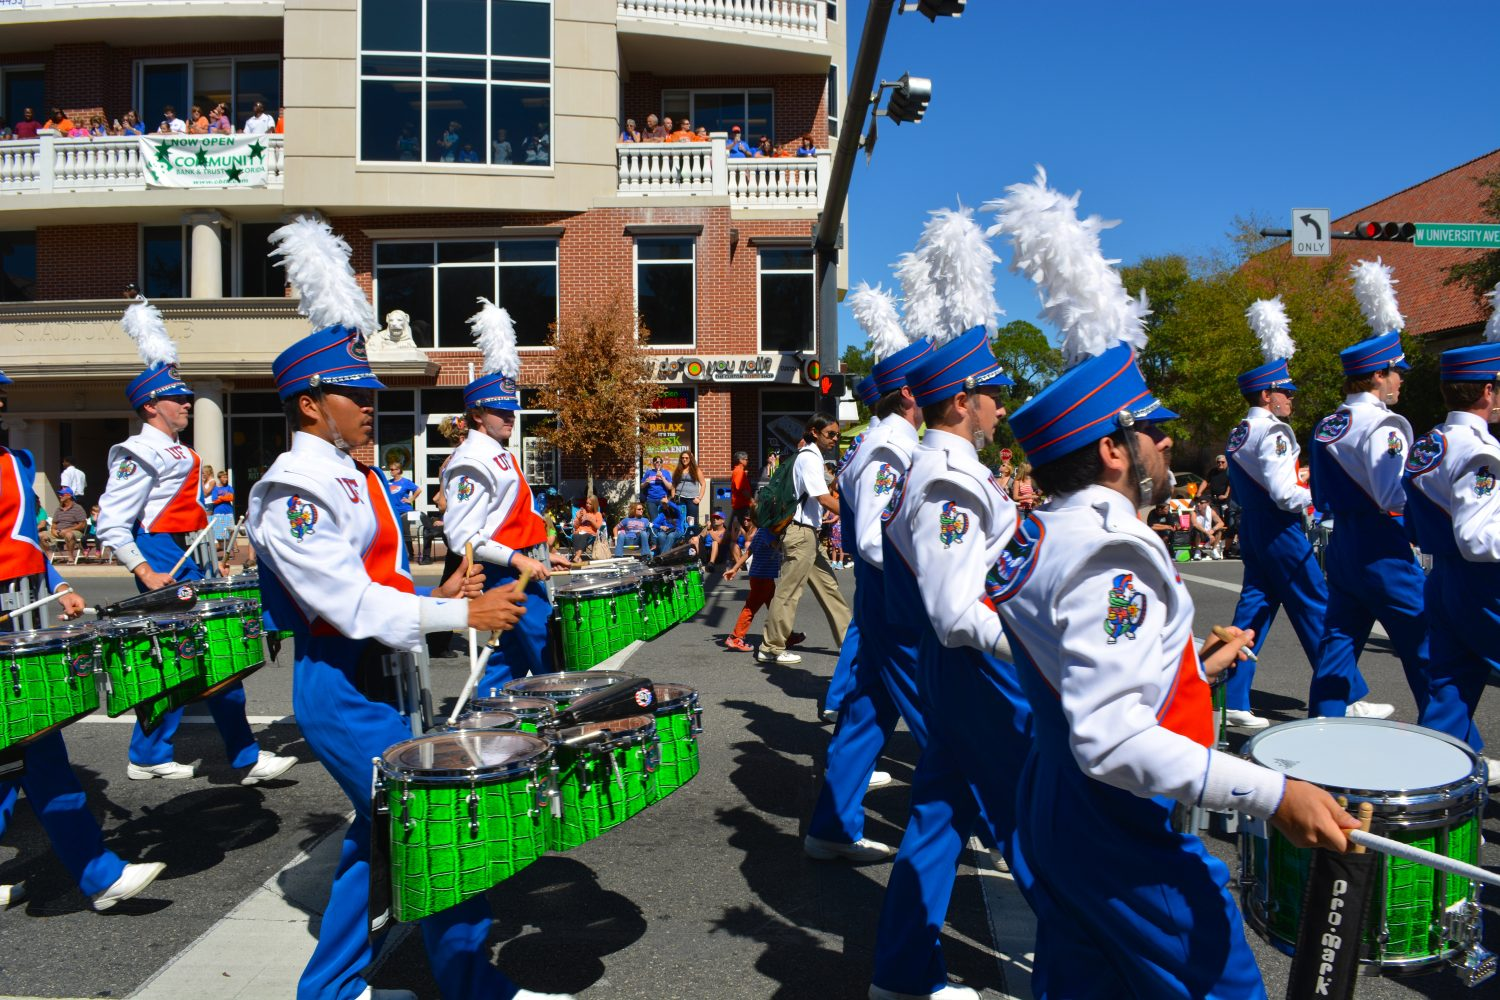 Local bands, floats and parade participants take part in the 2014 University of Florida homecoming parade.